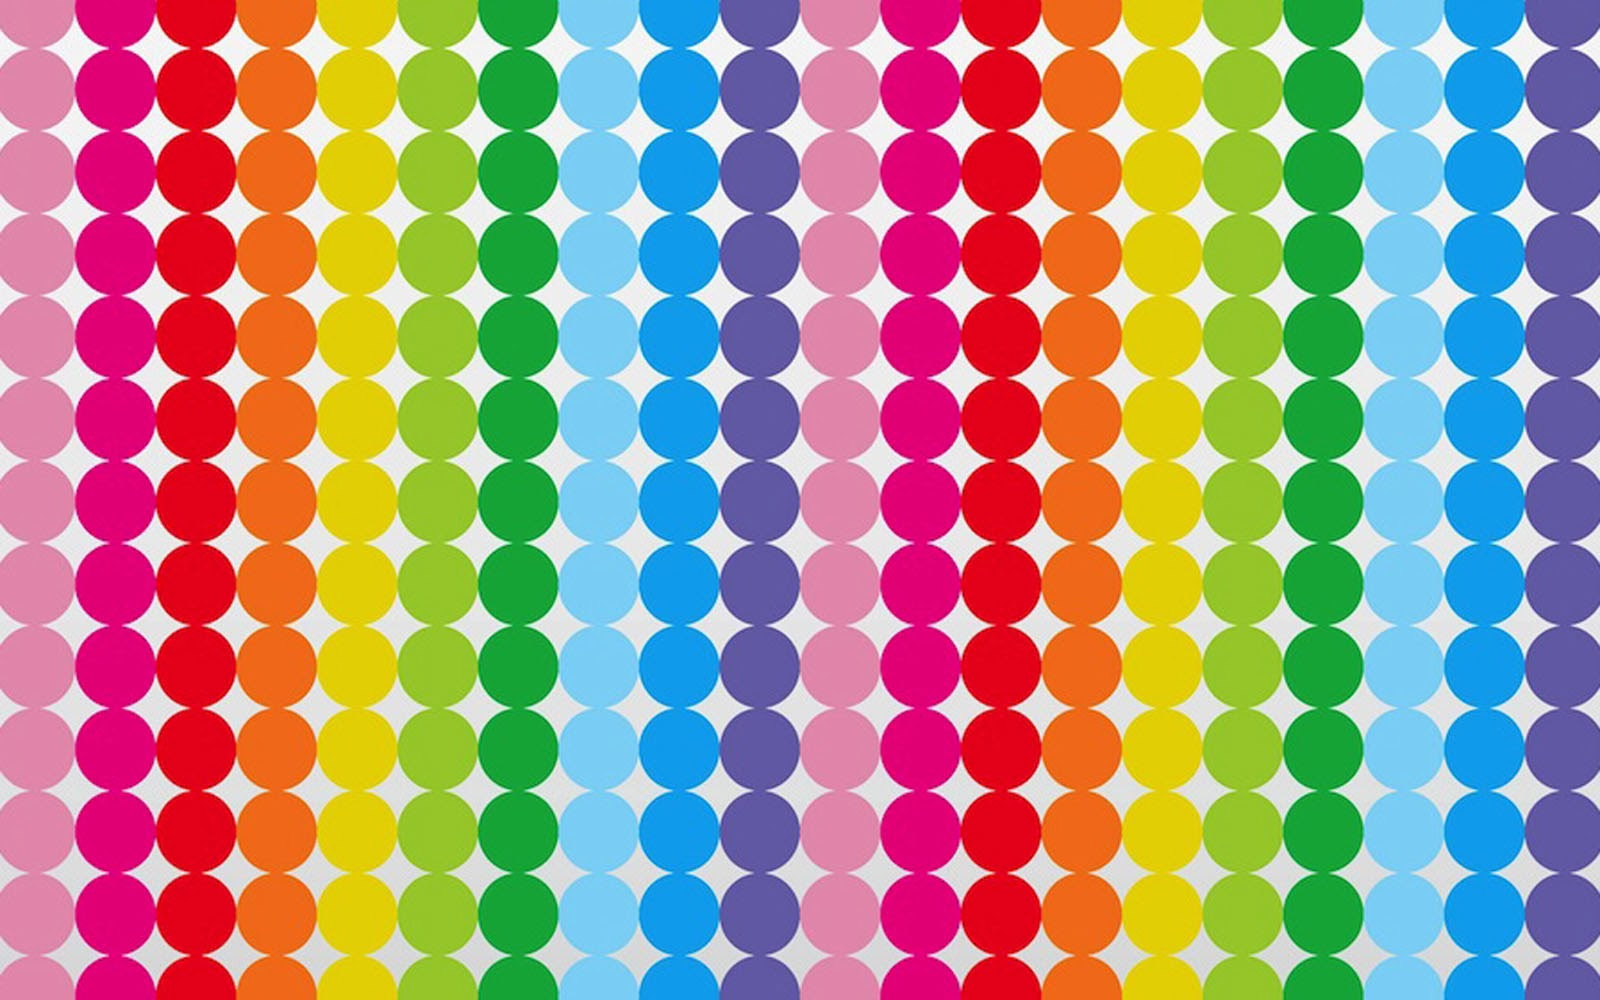 Wallpapers geometry rainbow colours wallpapers for Wallpaper styles and colors